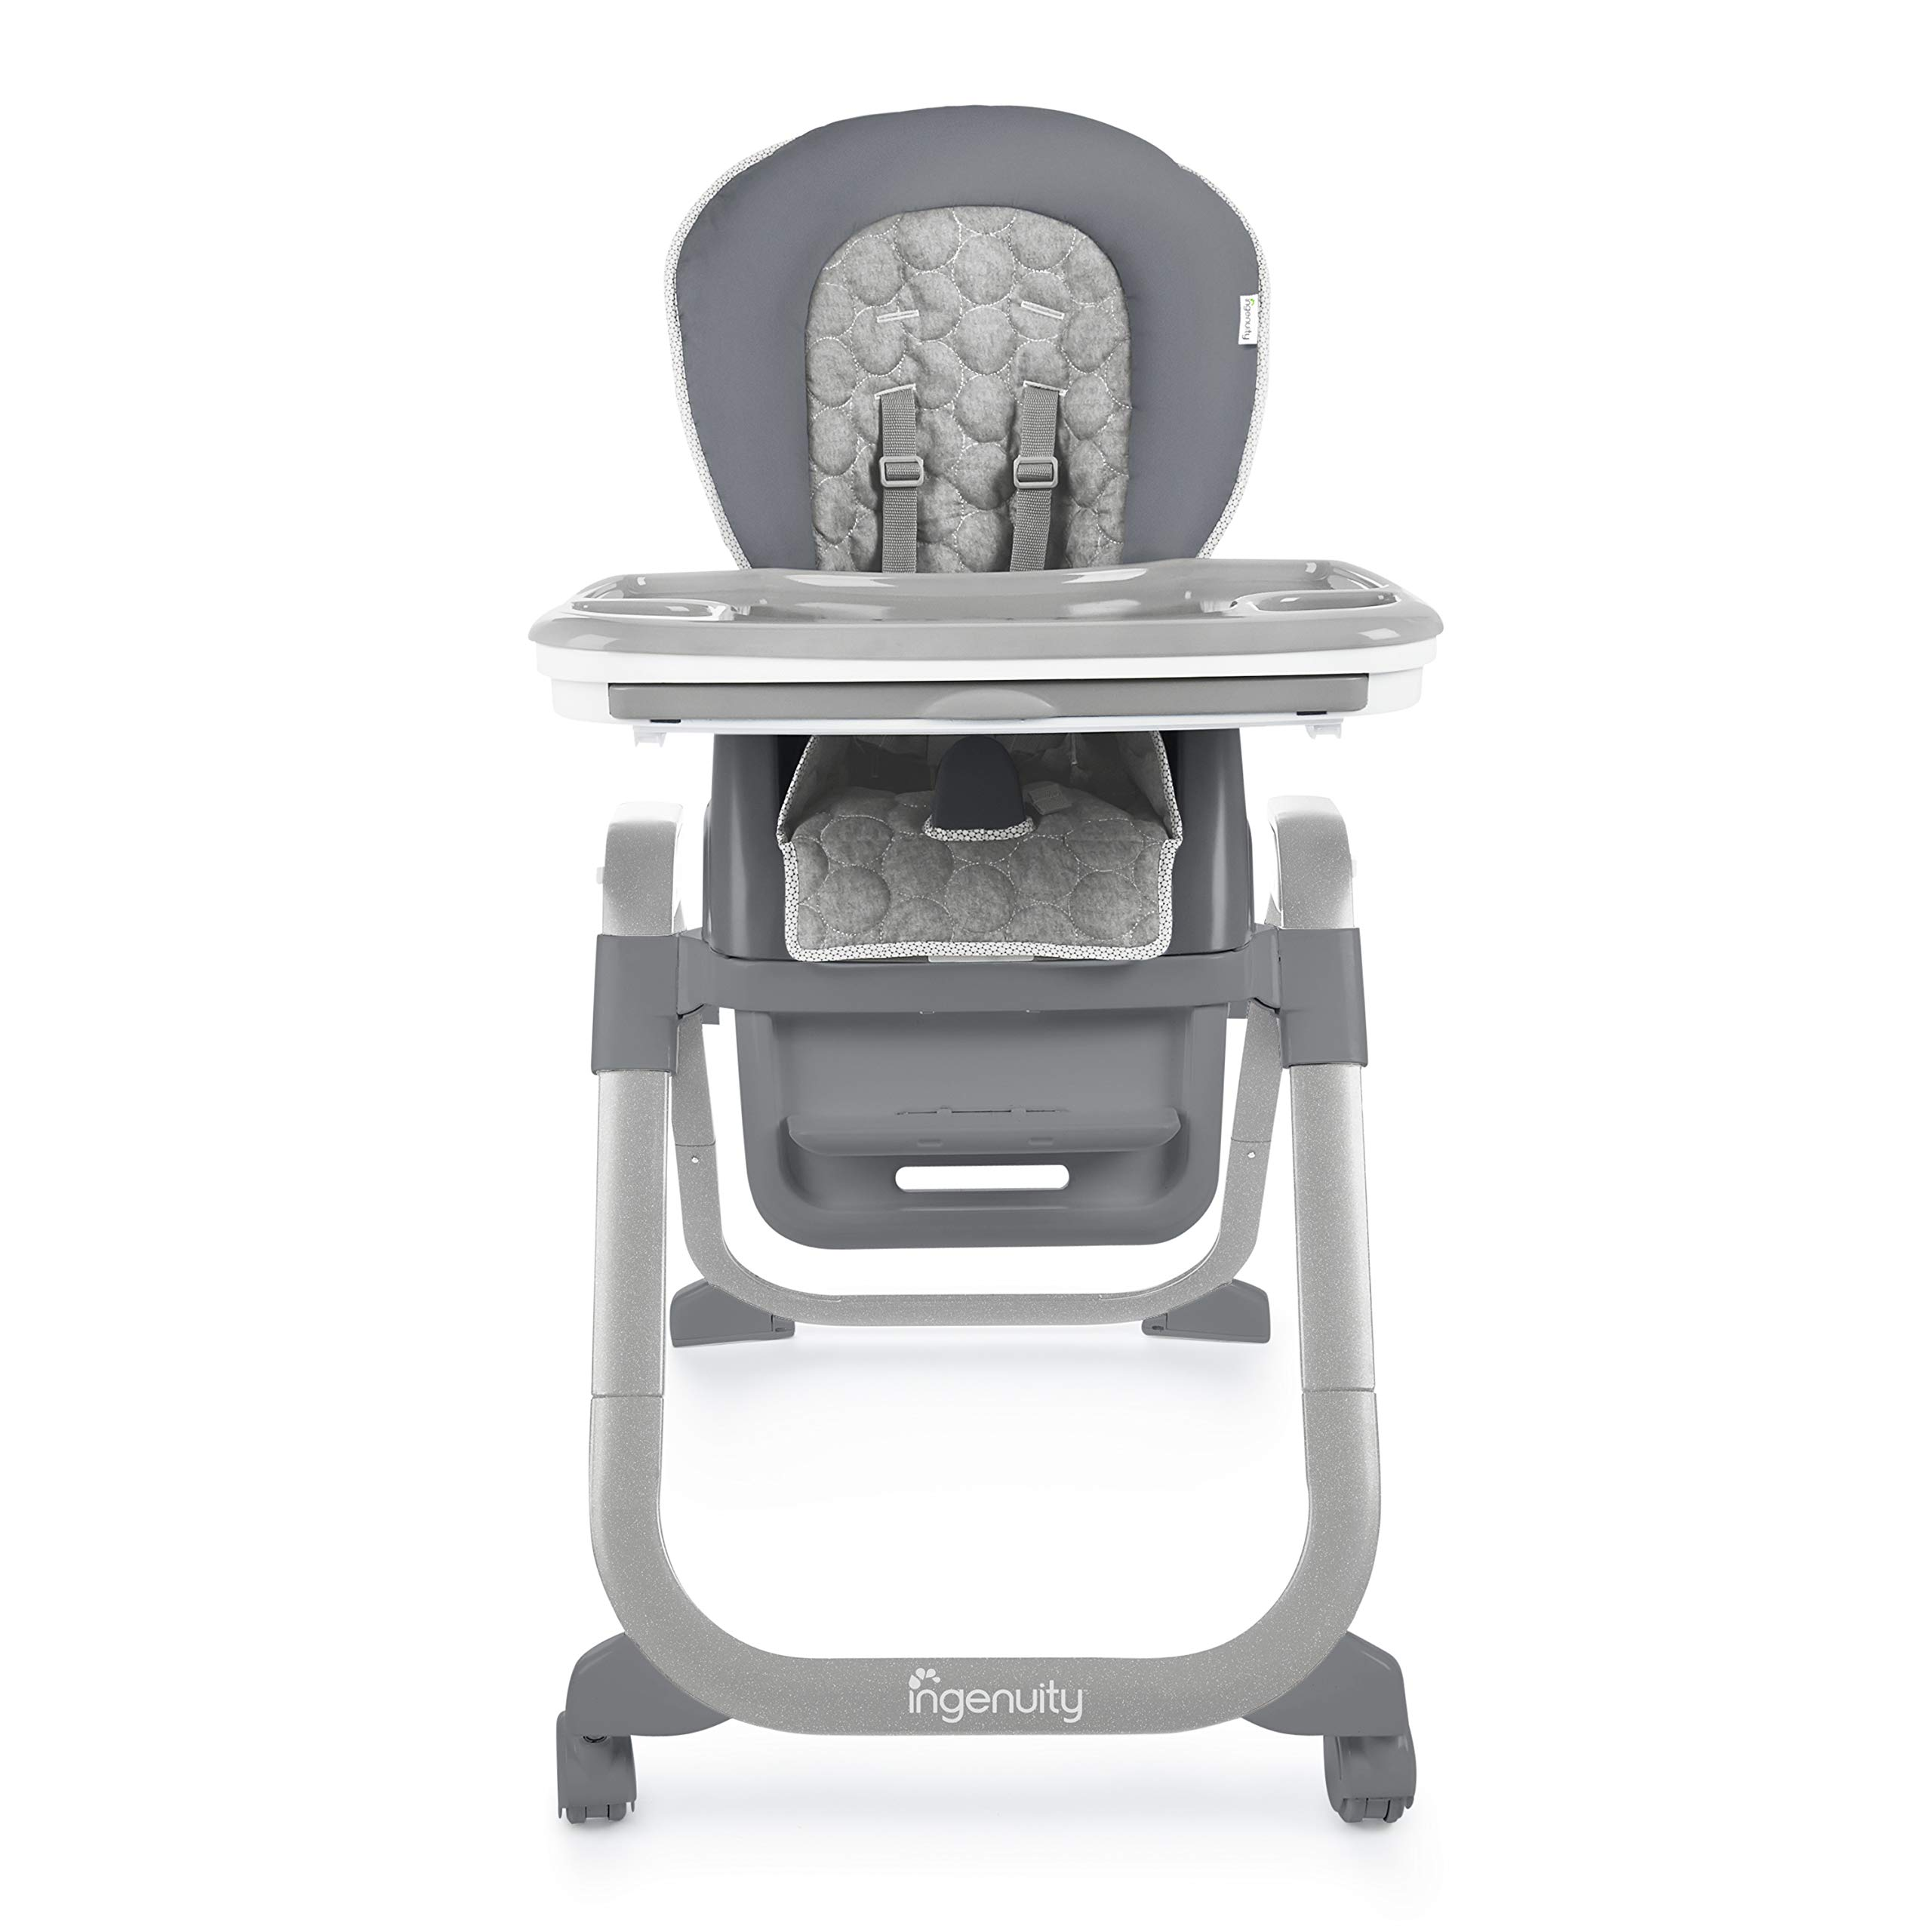 Ingenuity SmartServe 4-in-1 High Chair with Swing Out Tray - Connolly - High Chair, Toddler Chair, and Booster by Ingenuity